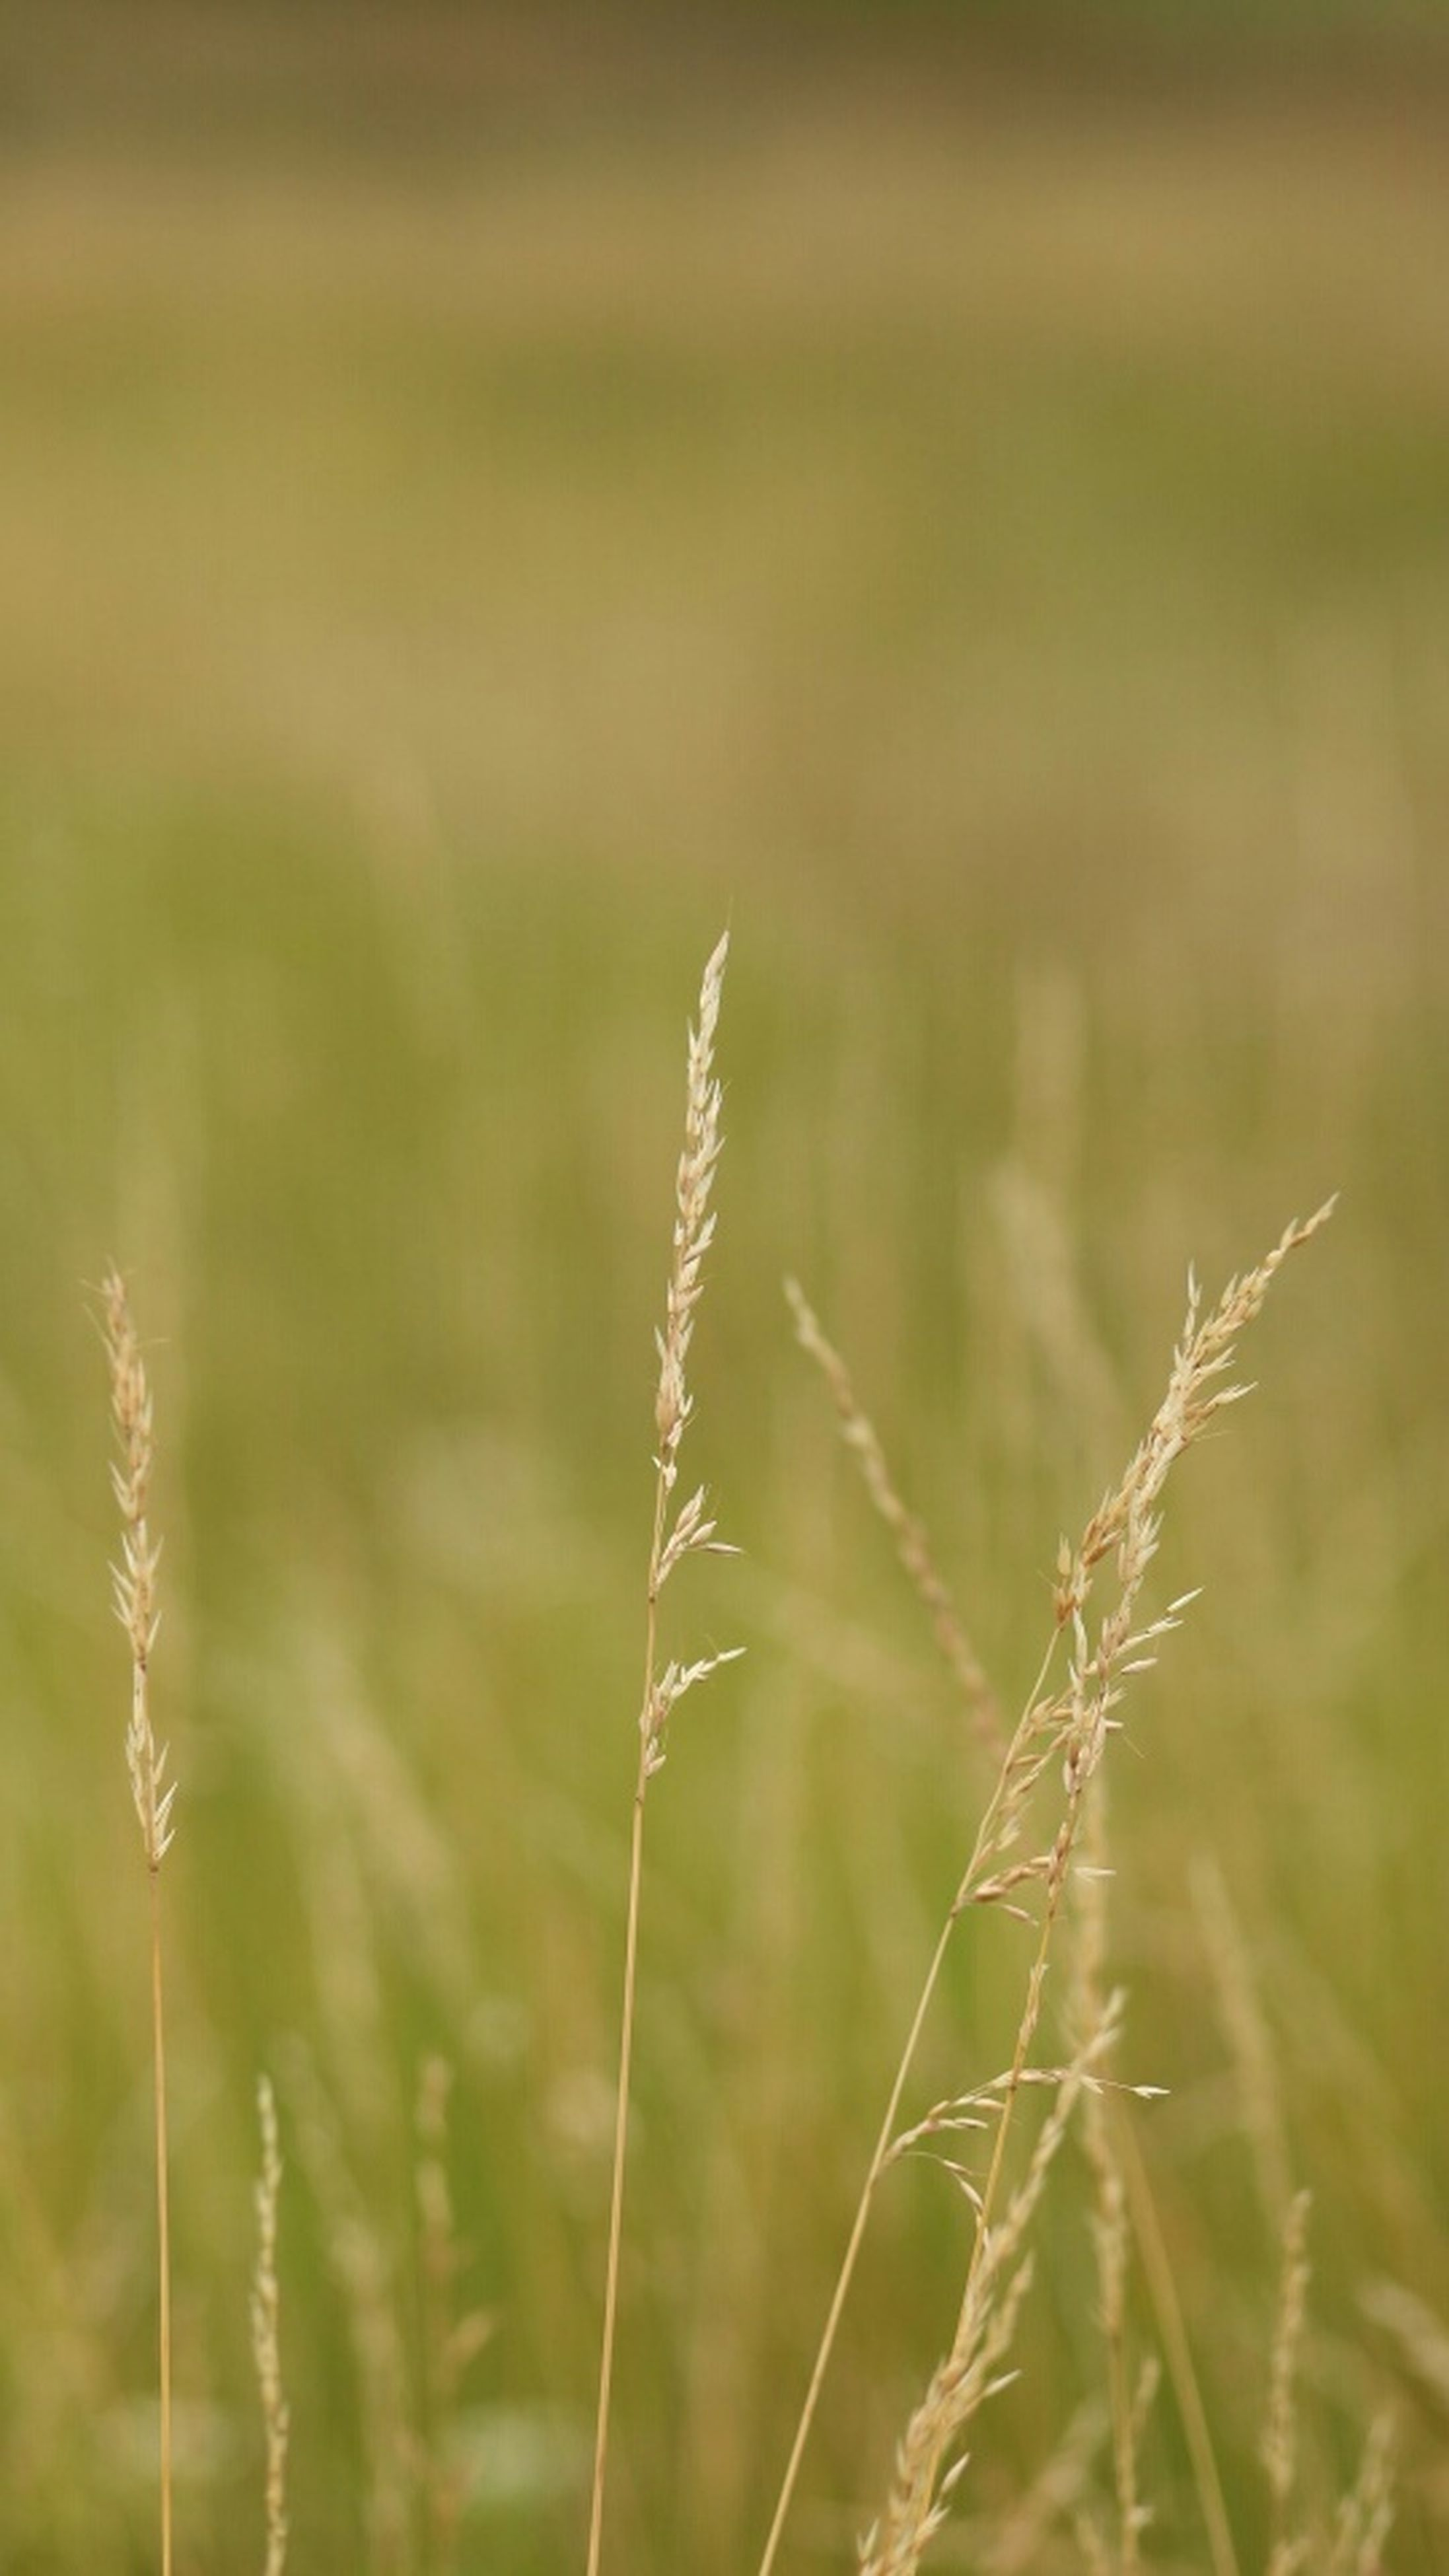 grass, focus on foreground, growth, field, plant, nature, close-up, tranquility, stem, selective focus, beauty in nature, growing, day, outdoors, no people, green color, landscape, tranquil scene, twig, blade of grass